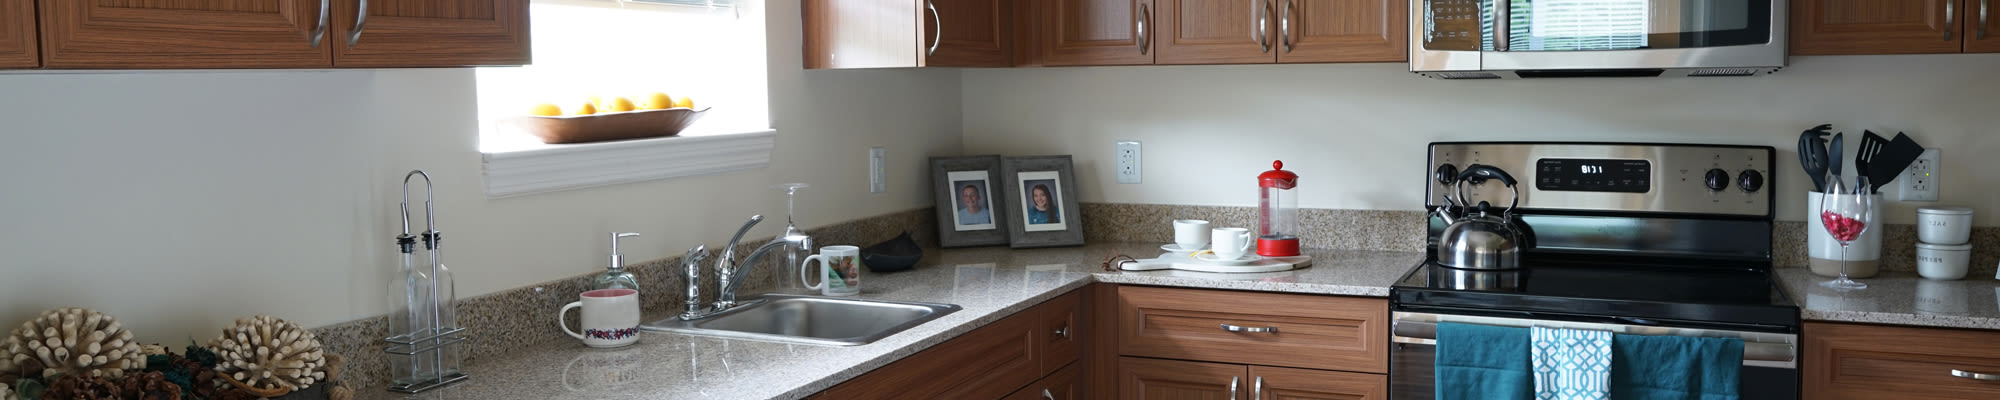 Independent Living at Harmony at Morgantown in Morgantown, West Virginia